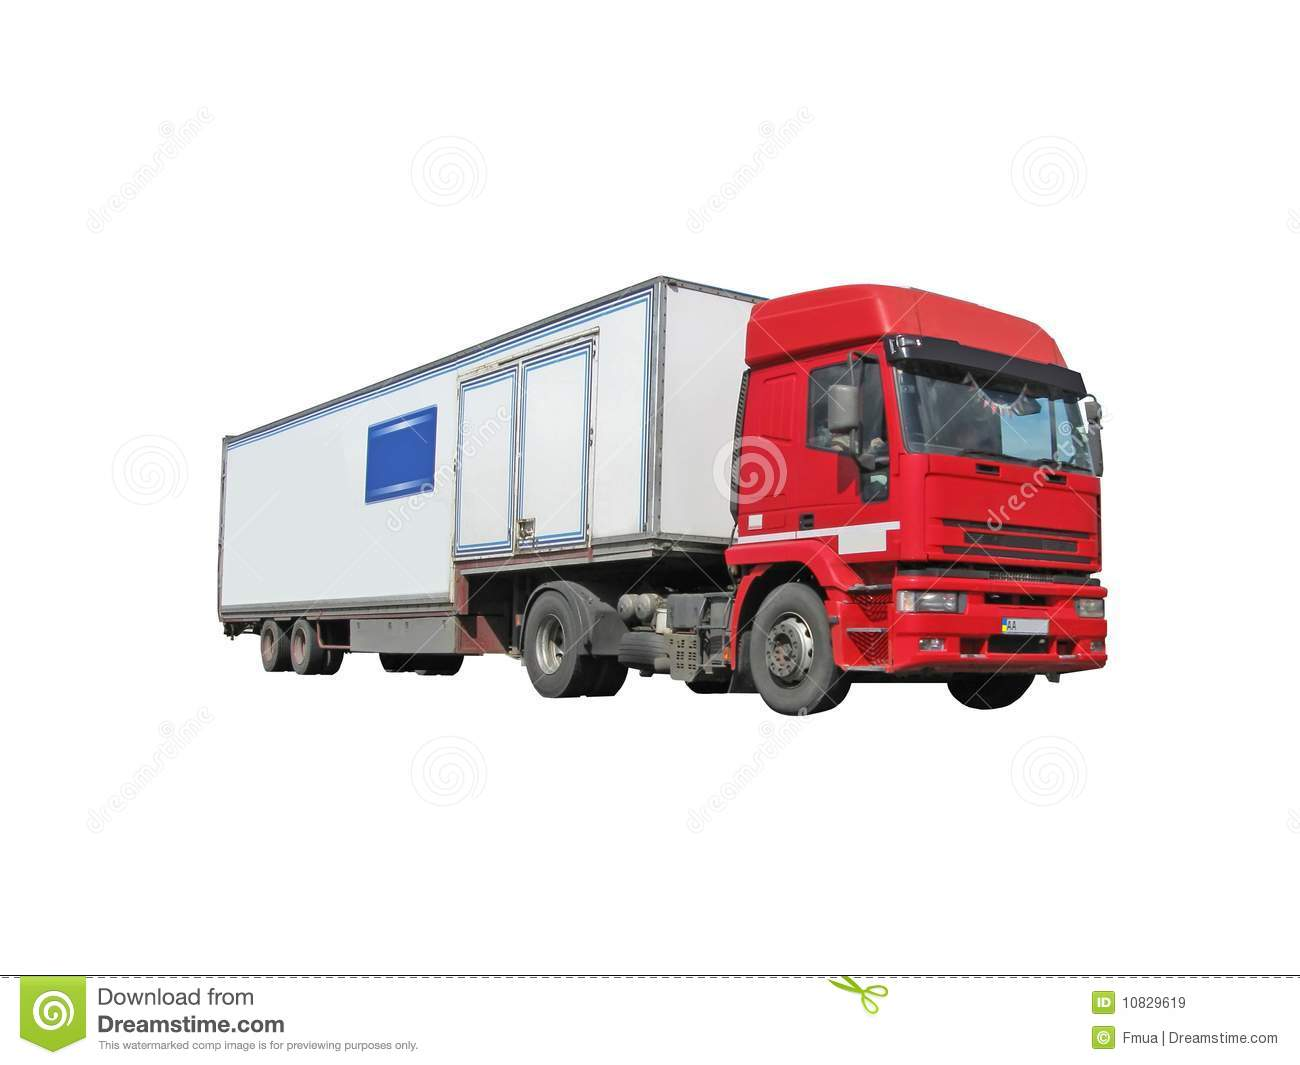 red diesel heavy cargo truck fuel lorry royalty free stock images image 10829619. Black Bedroom Furniture Sets. Home Design Ideas